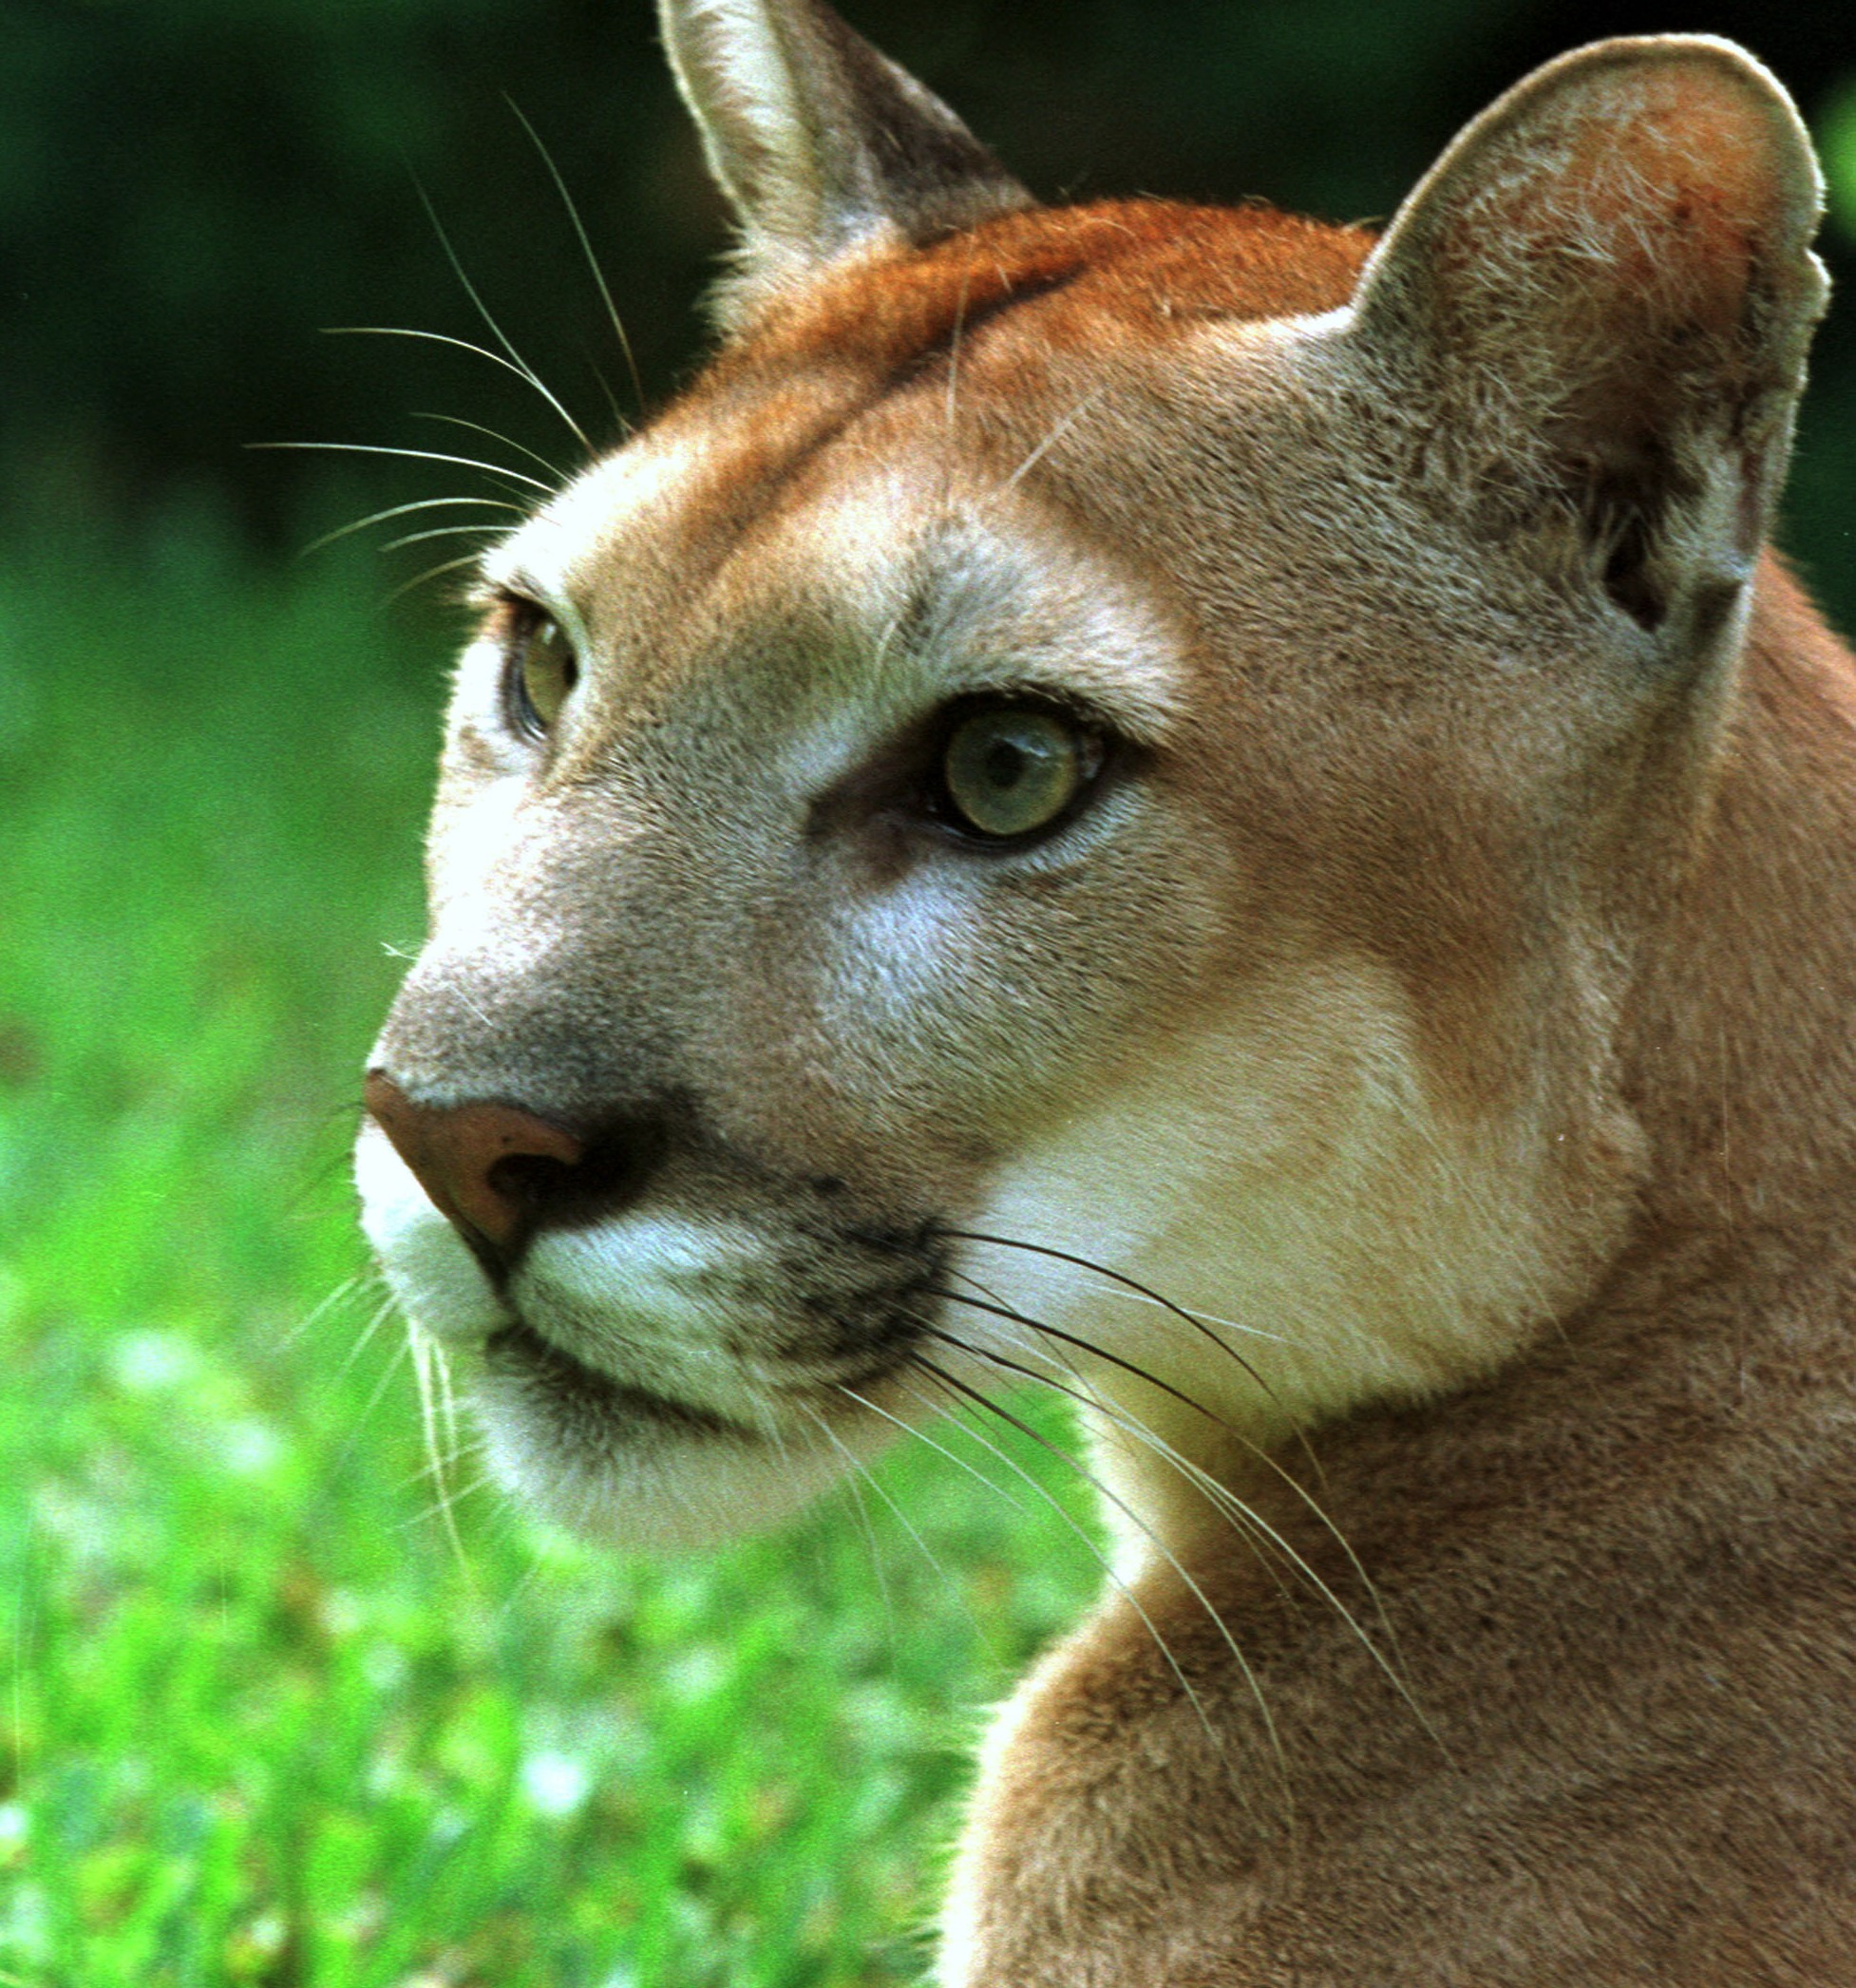 Mountain Lion Bites Head of 8-year-old Boy, Child Fights Off